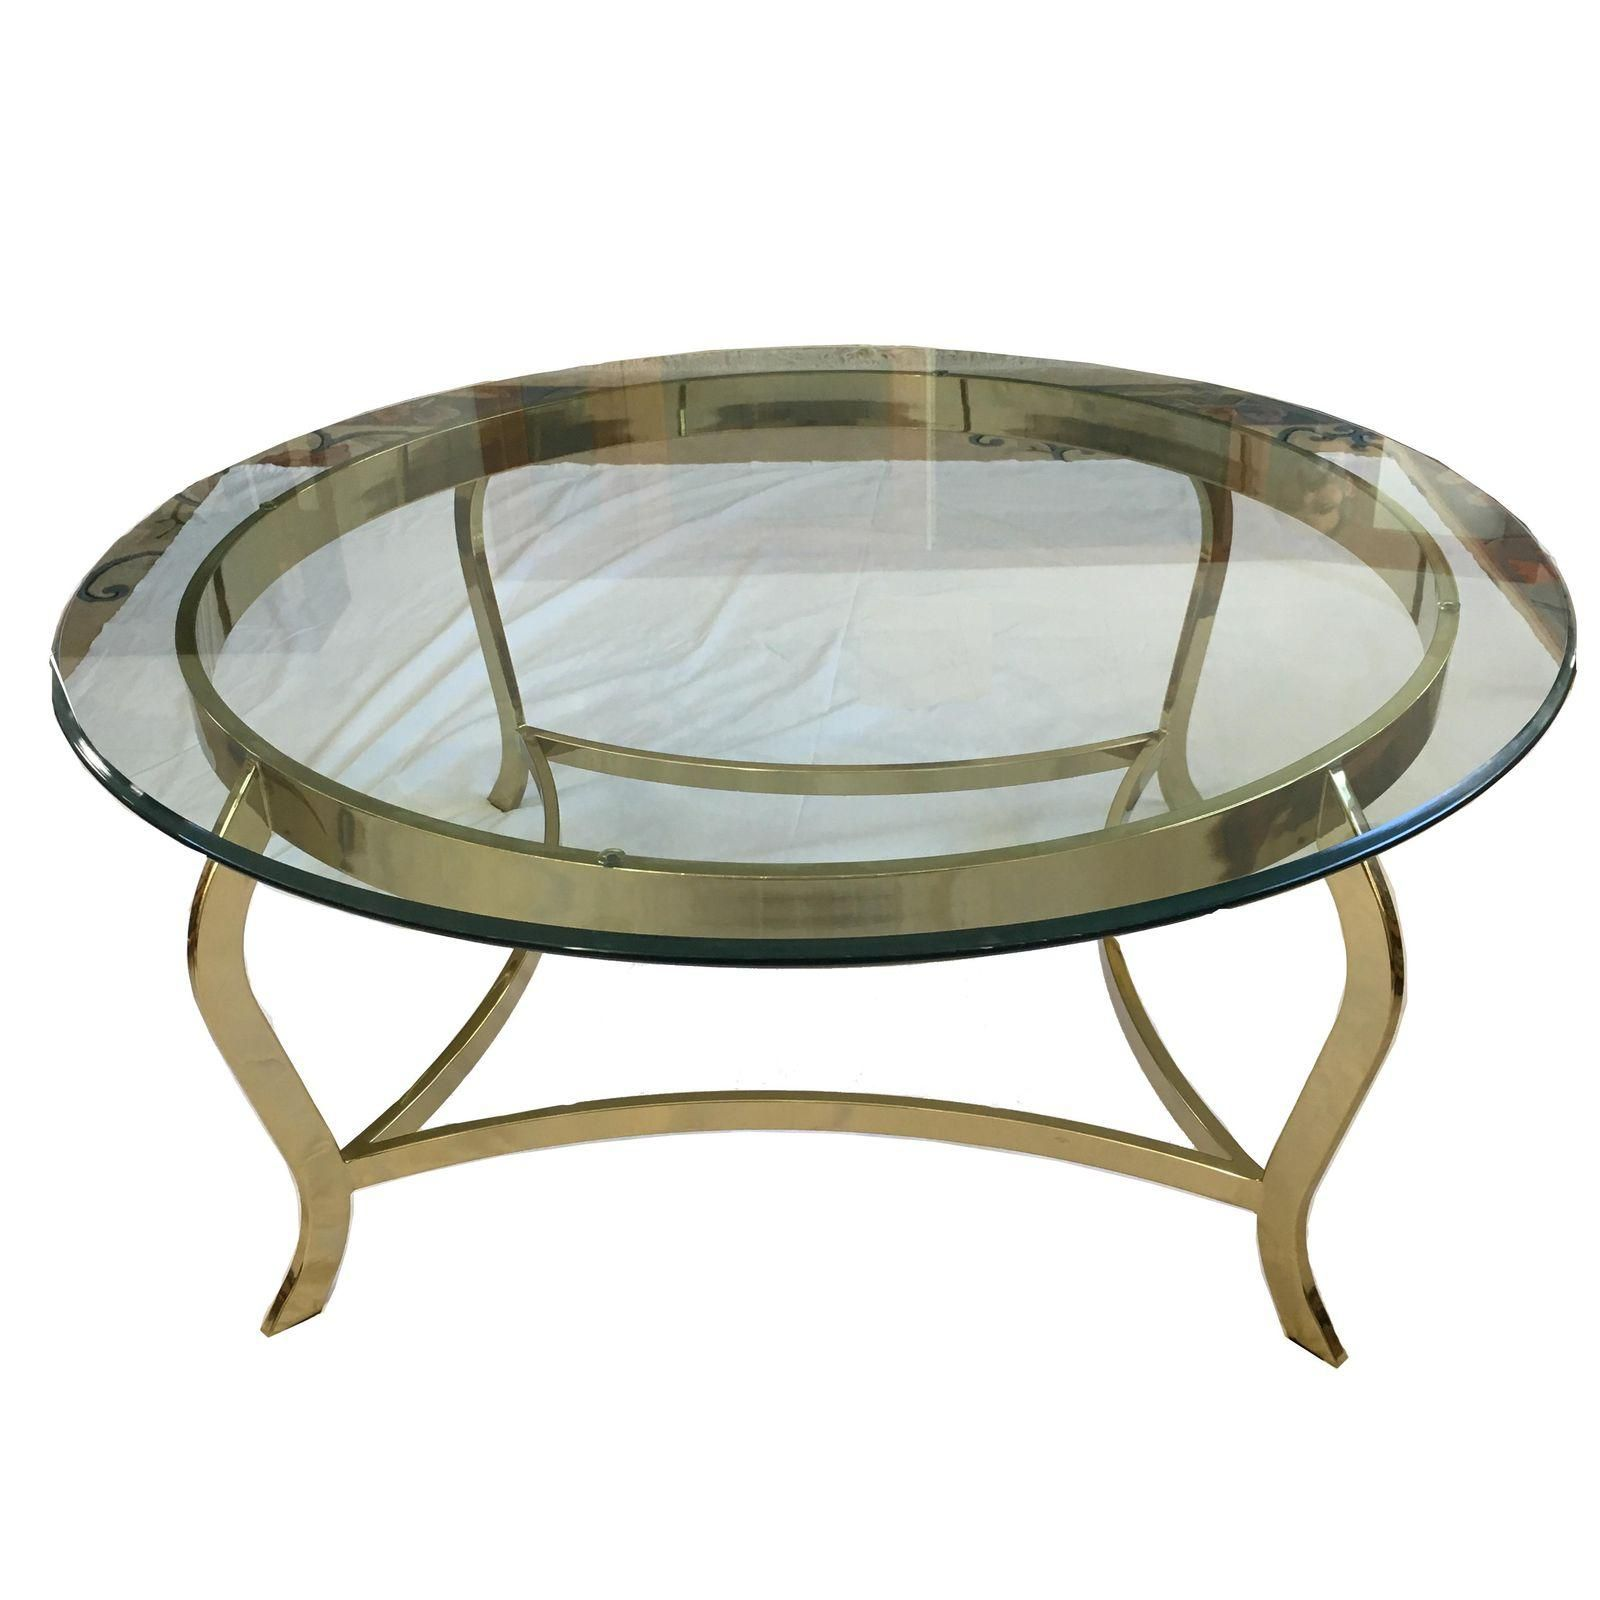 1990s Contemporary Glass Coffee Table Image 7 Of 7 Coffee Table Contemporary Glass Coffee Tables Coffee Table Images